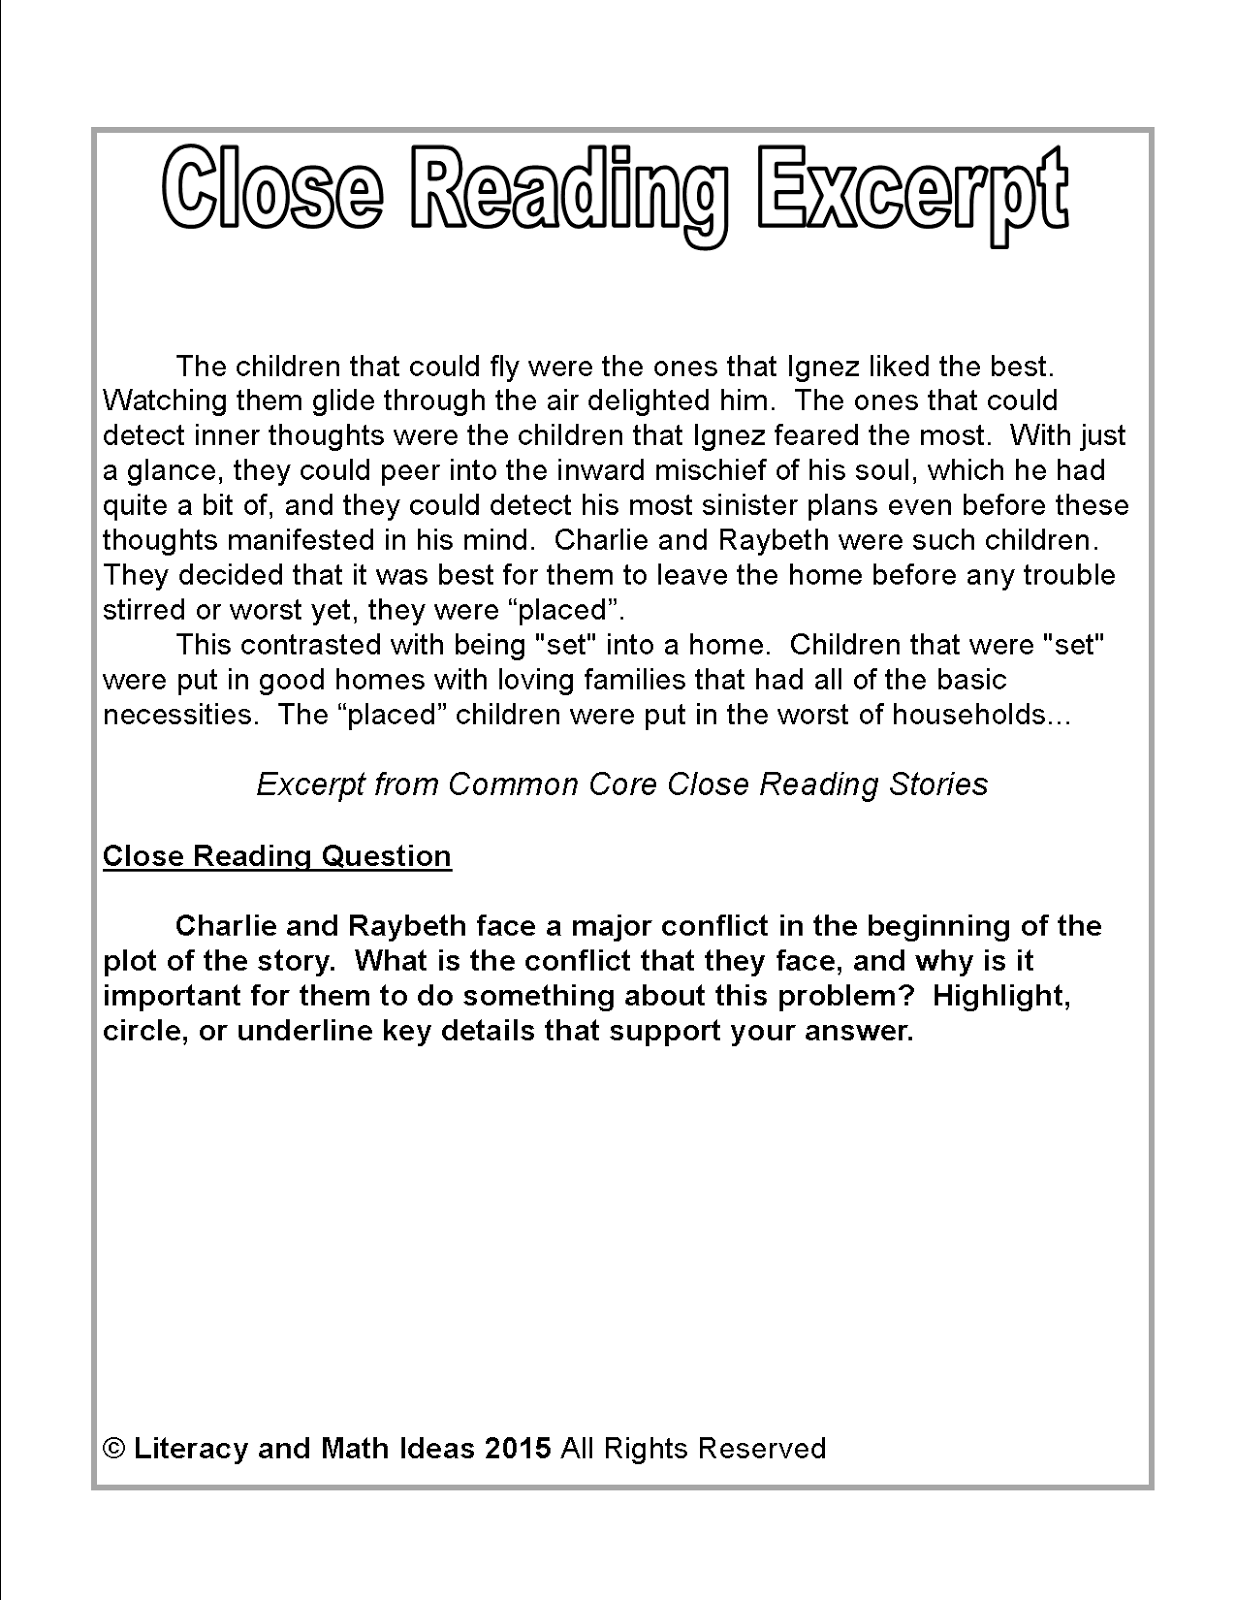 Worksheet 3rd Grade Reading Passages With Questions worksheet 3rd grade passages wosenly free reading passage mikyu literacy math ideas close of